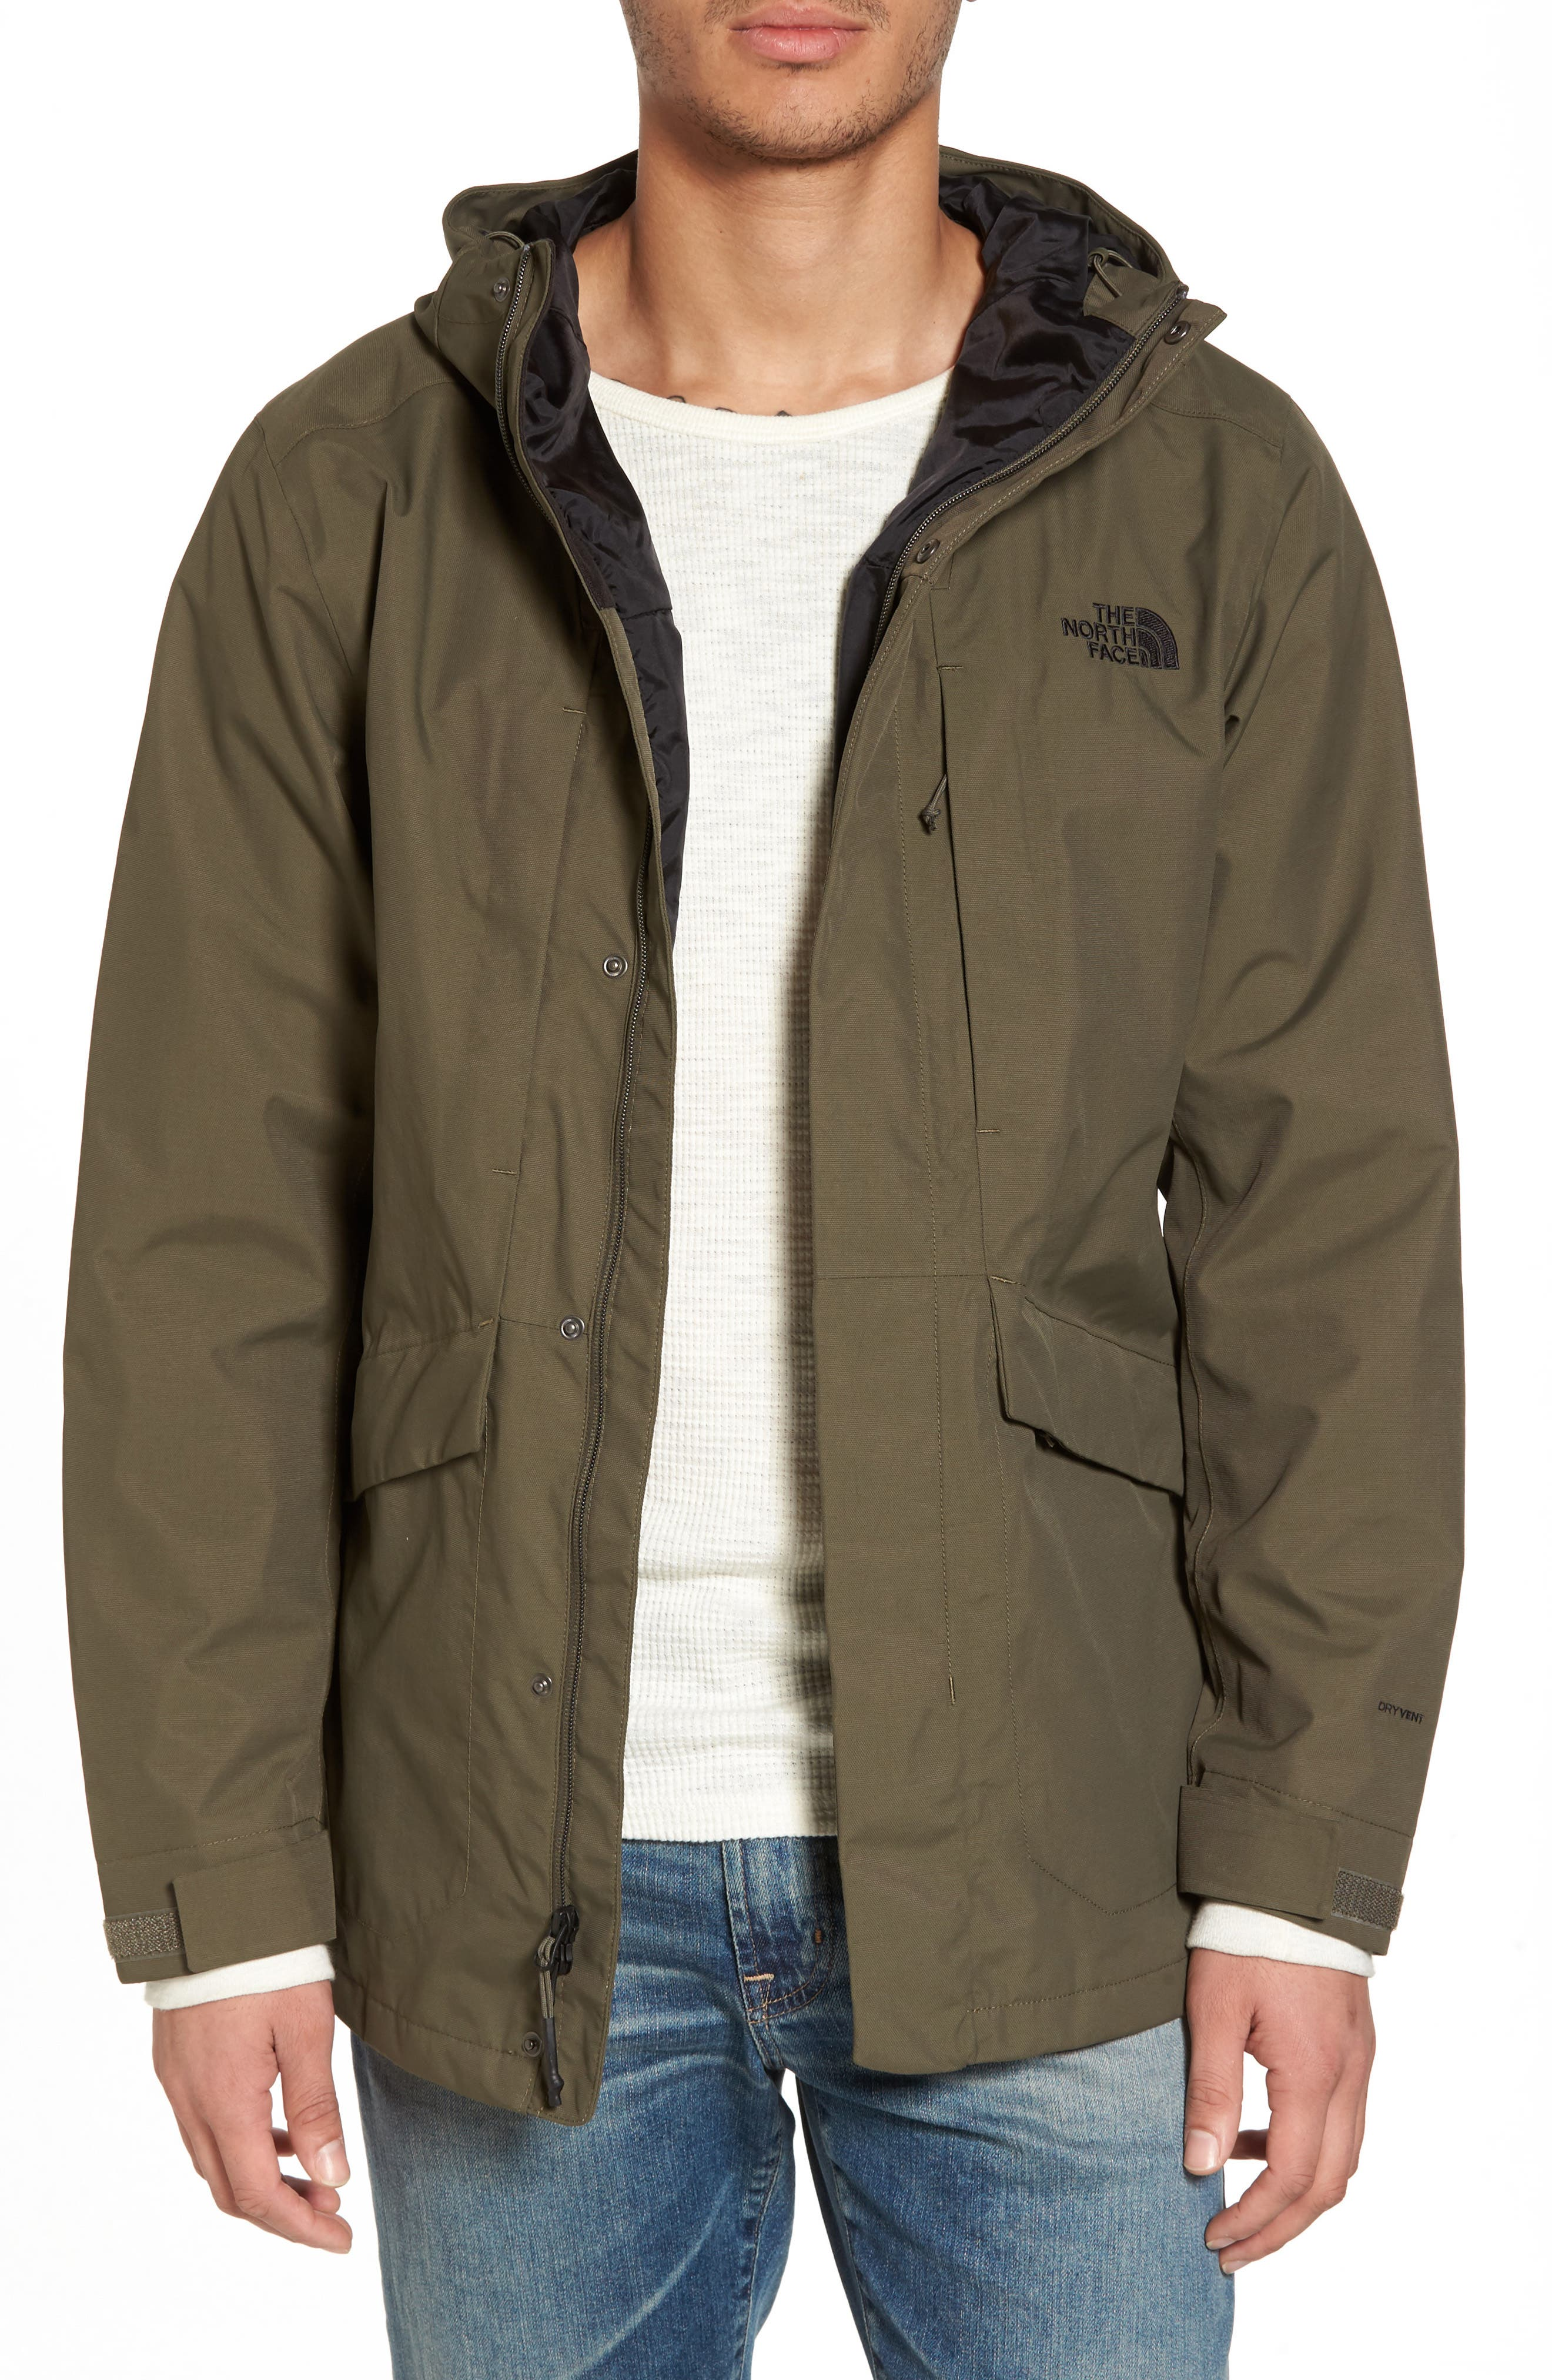 El Misti Trench II Hooded Jacket,                             Main thumbnail 1, color,                             New Taupe Green